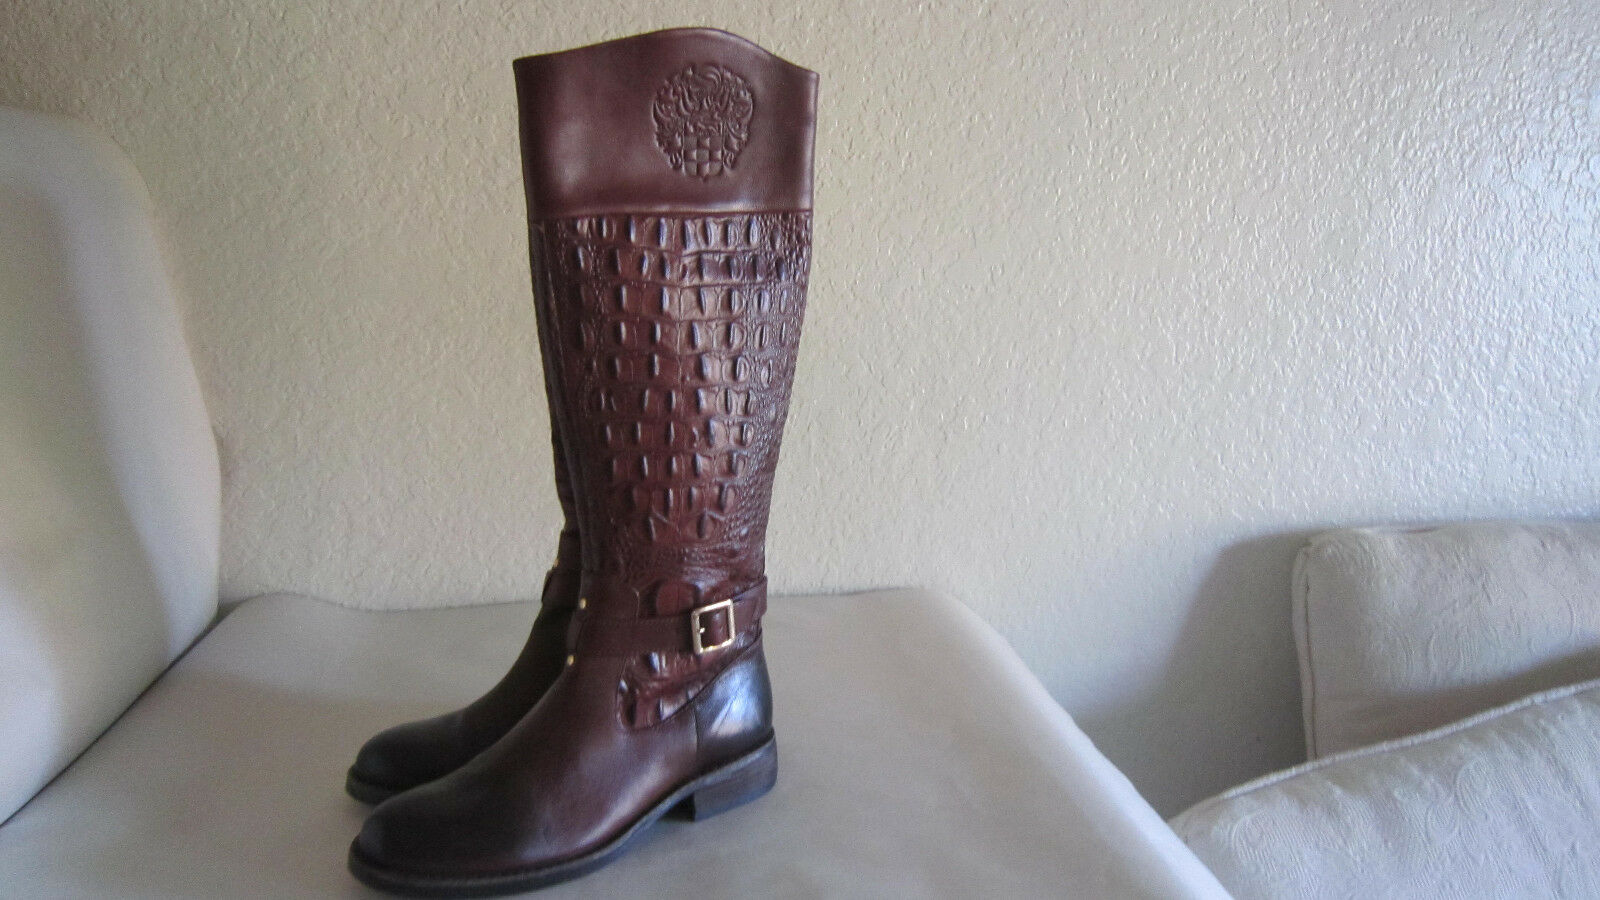 Vince Camuto FLAVIAN Brown Leather Croc Knee High Tall Riding Boot Sz 6.5